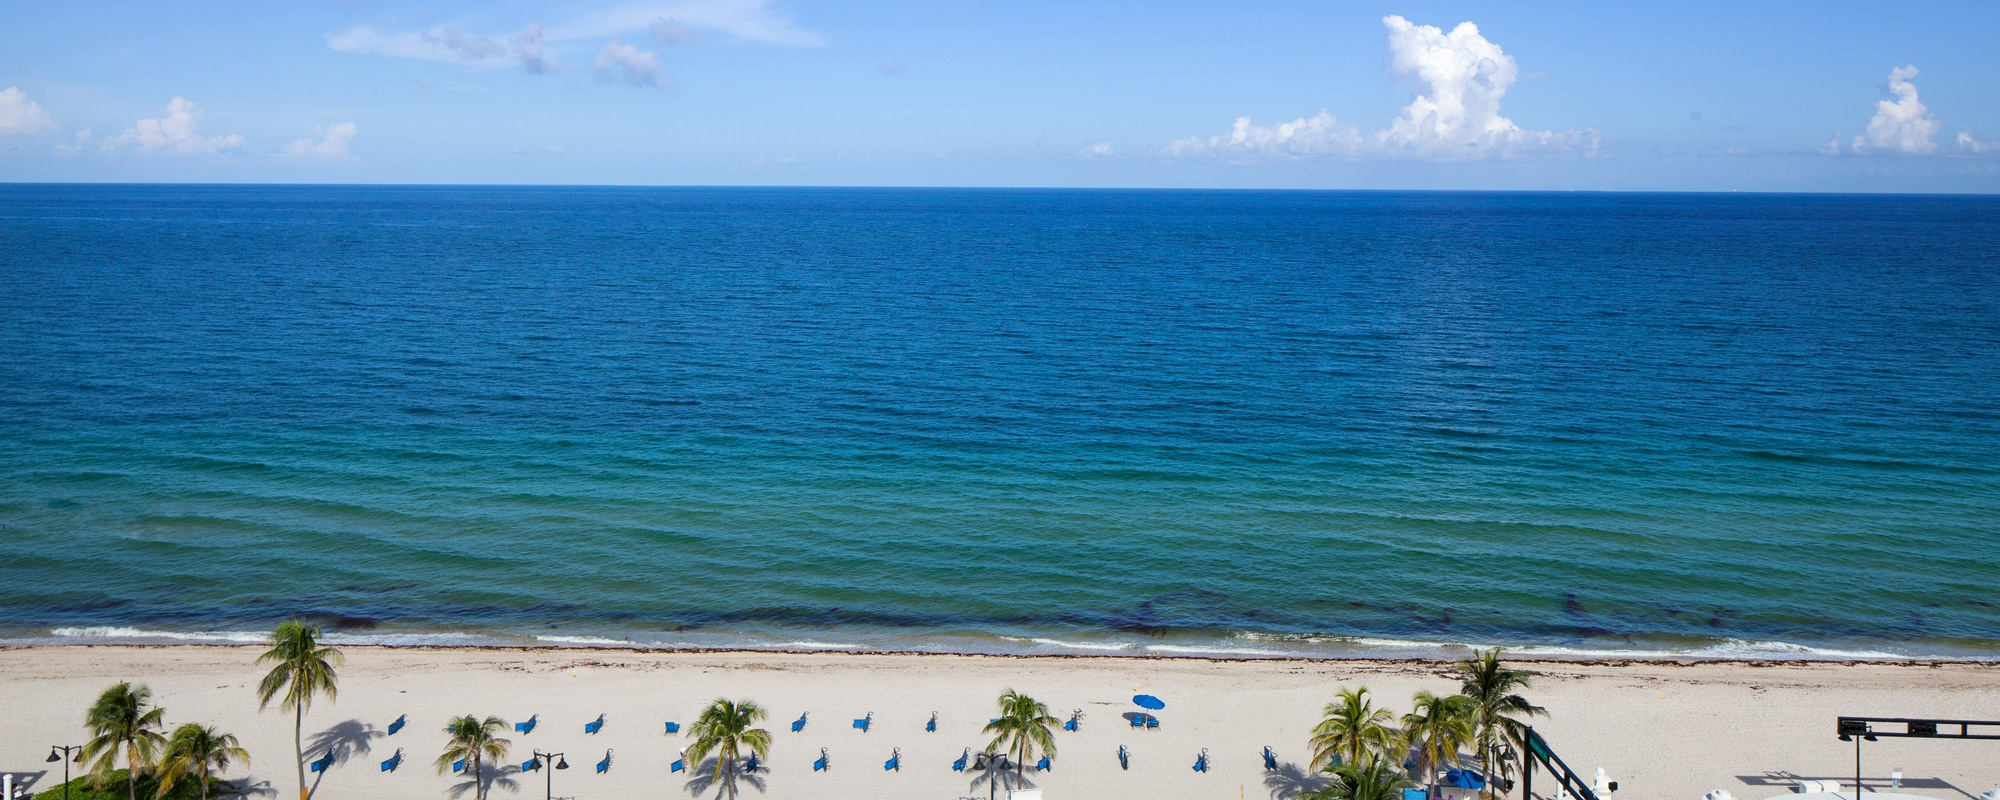 Luxury Boutique Hotel In Fort Lauderdale W